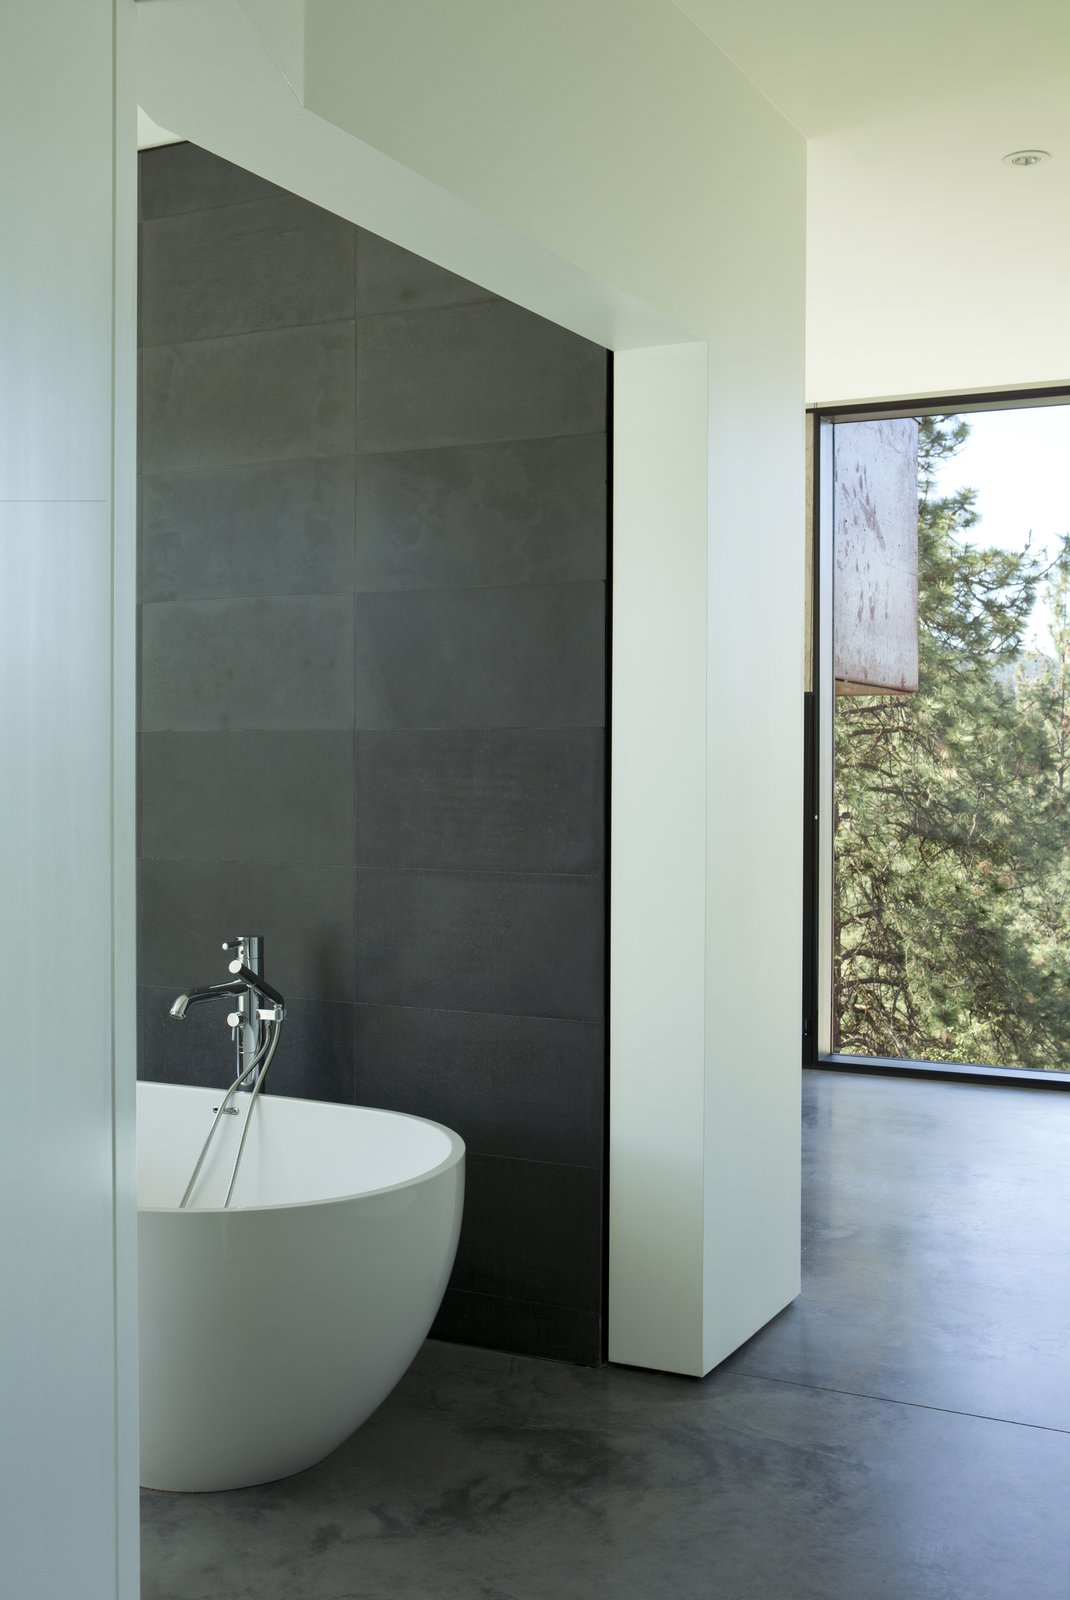 The bathtub is Aquabagno by Aquabrass. Tagged: Bath Room, Concrete Floor, Freestanding Tub, and Concrete Counter. A Hilltop Home in British Columbia That Seems to Grow Out of a Park - Photo 10 of 11